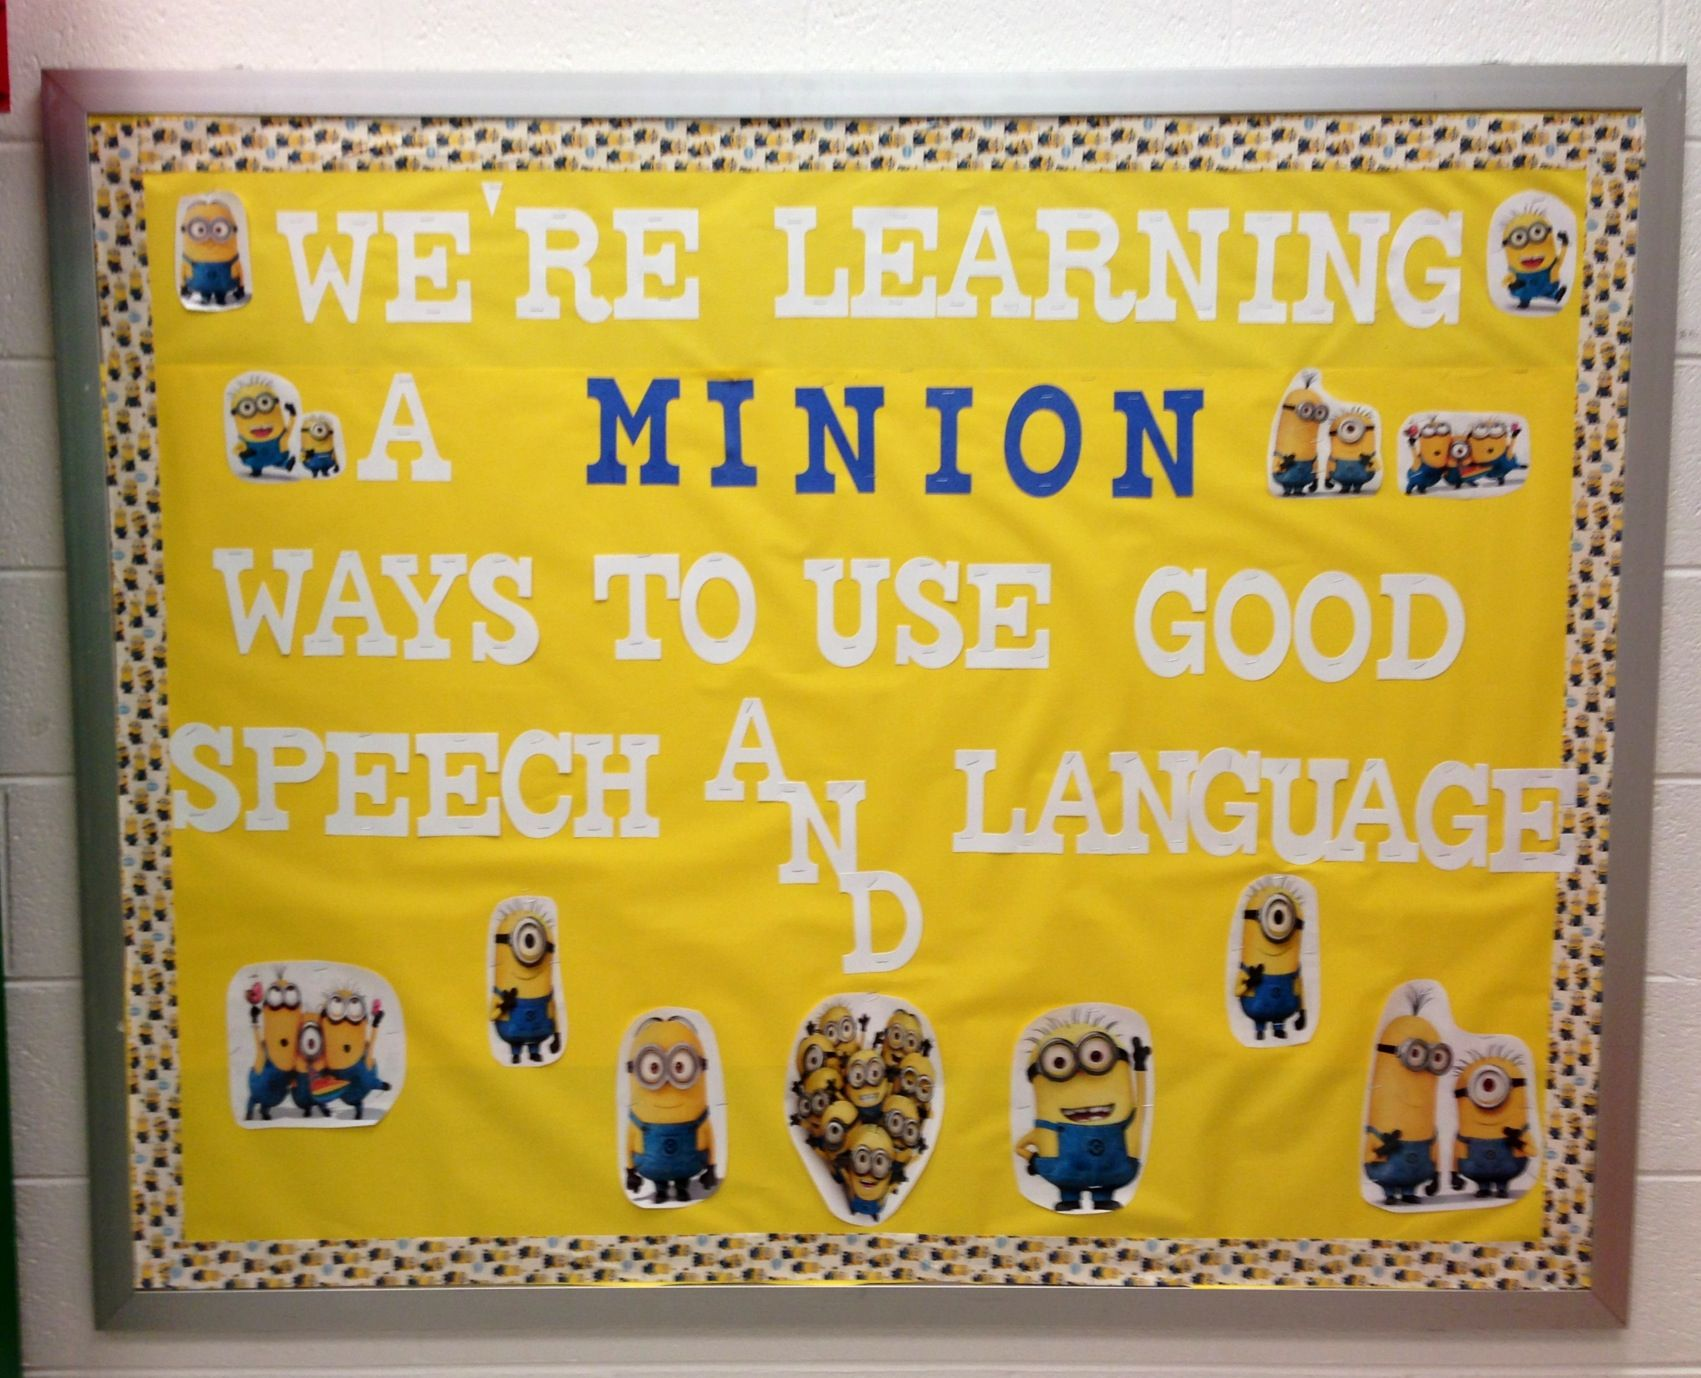 My Despicable Me Inspired Bulletin Board In My Office